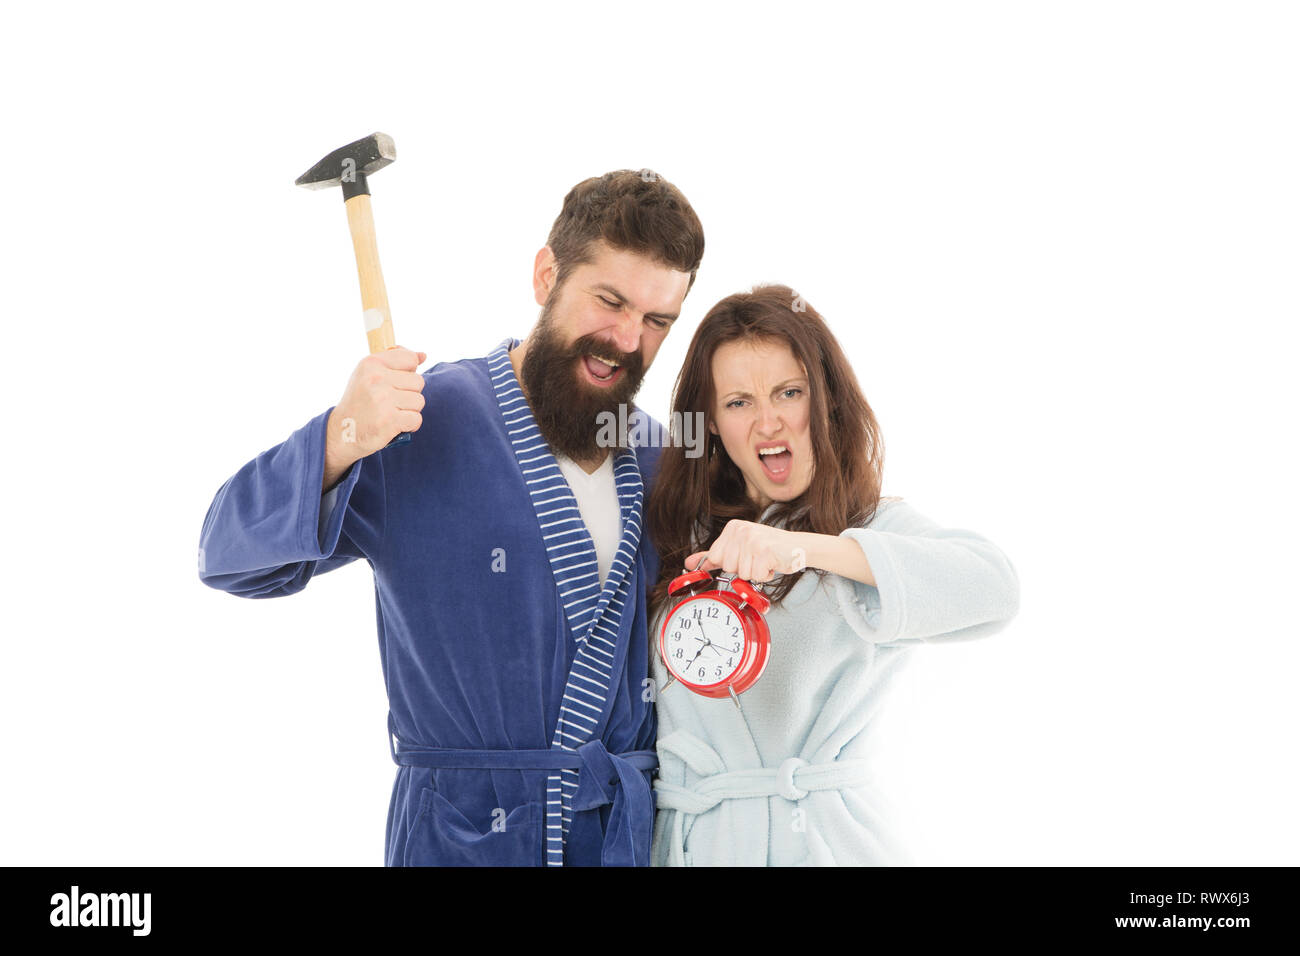 I hate monday. Couple morning awakening alarm clock. We should go to bed earlier. stressed bearded man and woman. Crush the rush. Hate morning awakening. hate morning alarms everyday. lack of sleep. - Stock Image